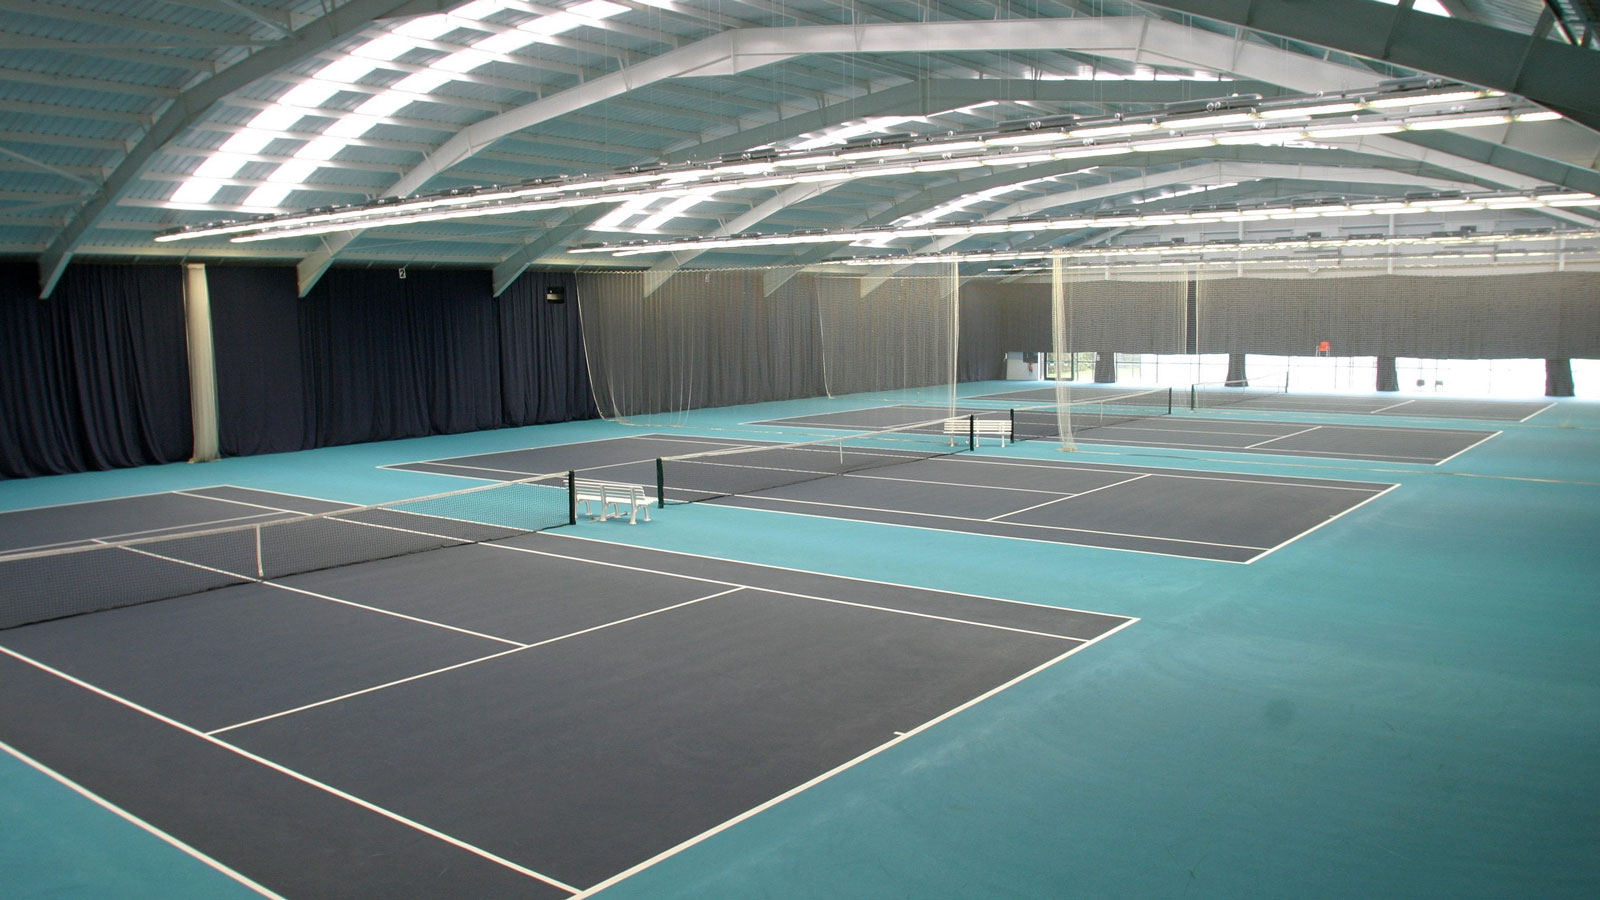 Tennis centre sport loughborough university - Loughborough university swimming pool ...